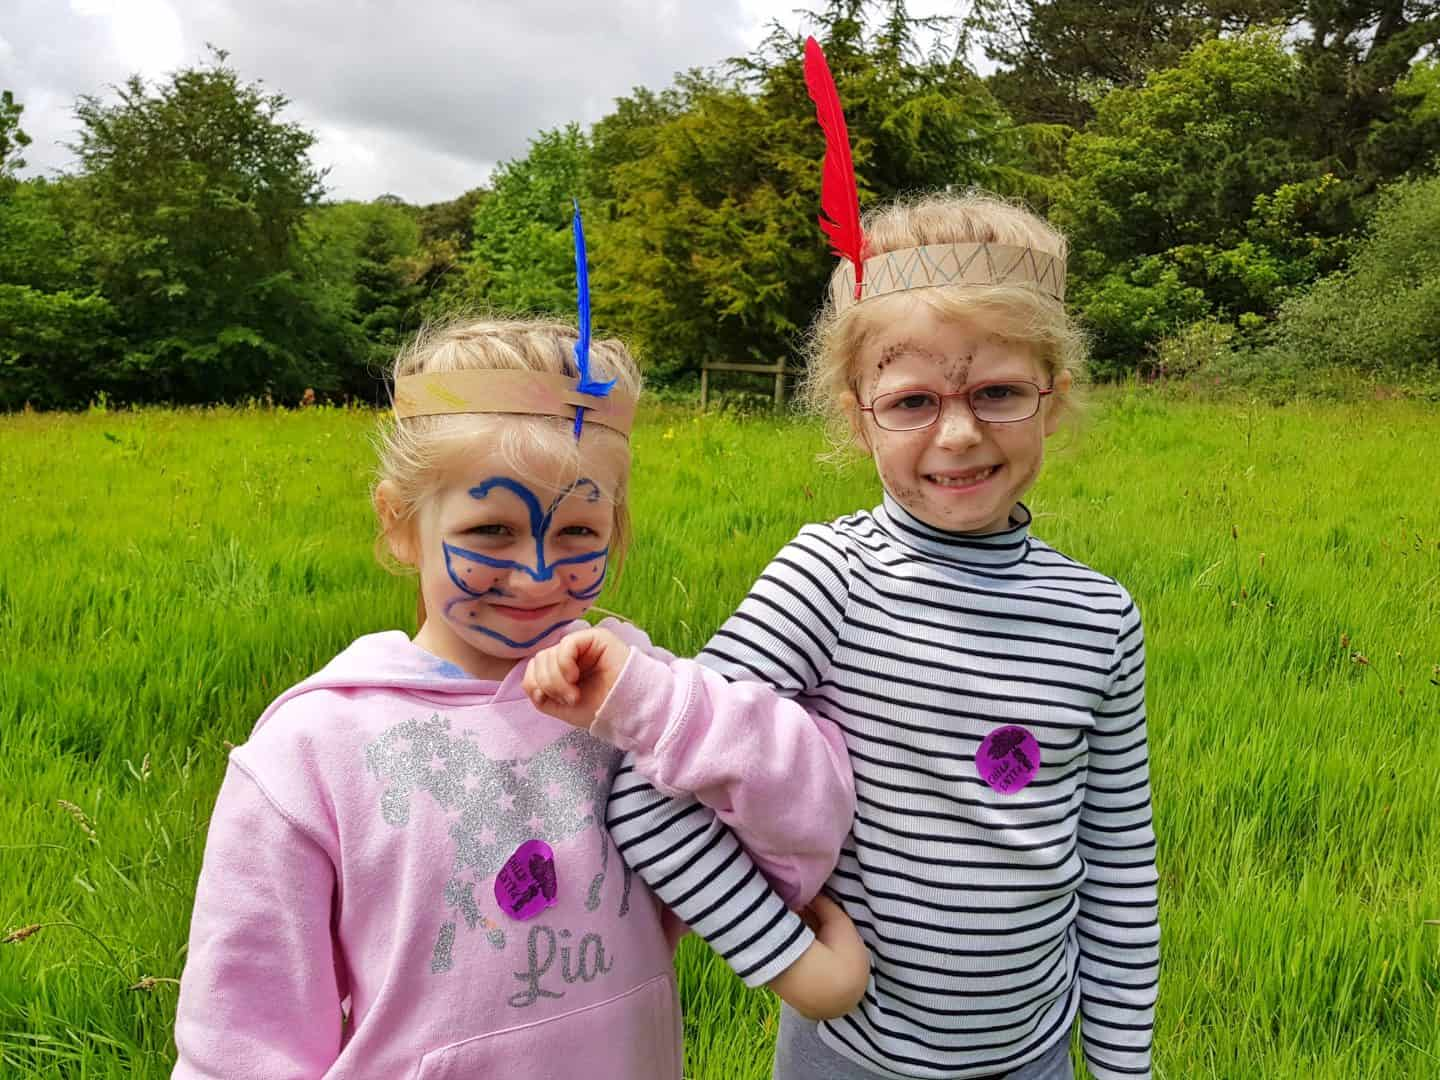 Two girls with face paints and headdresses on